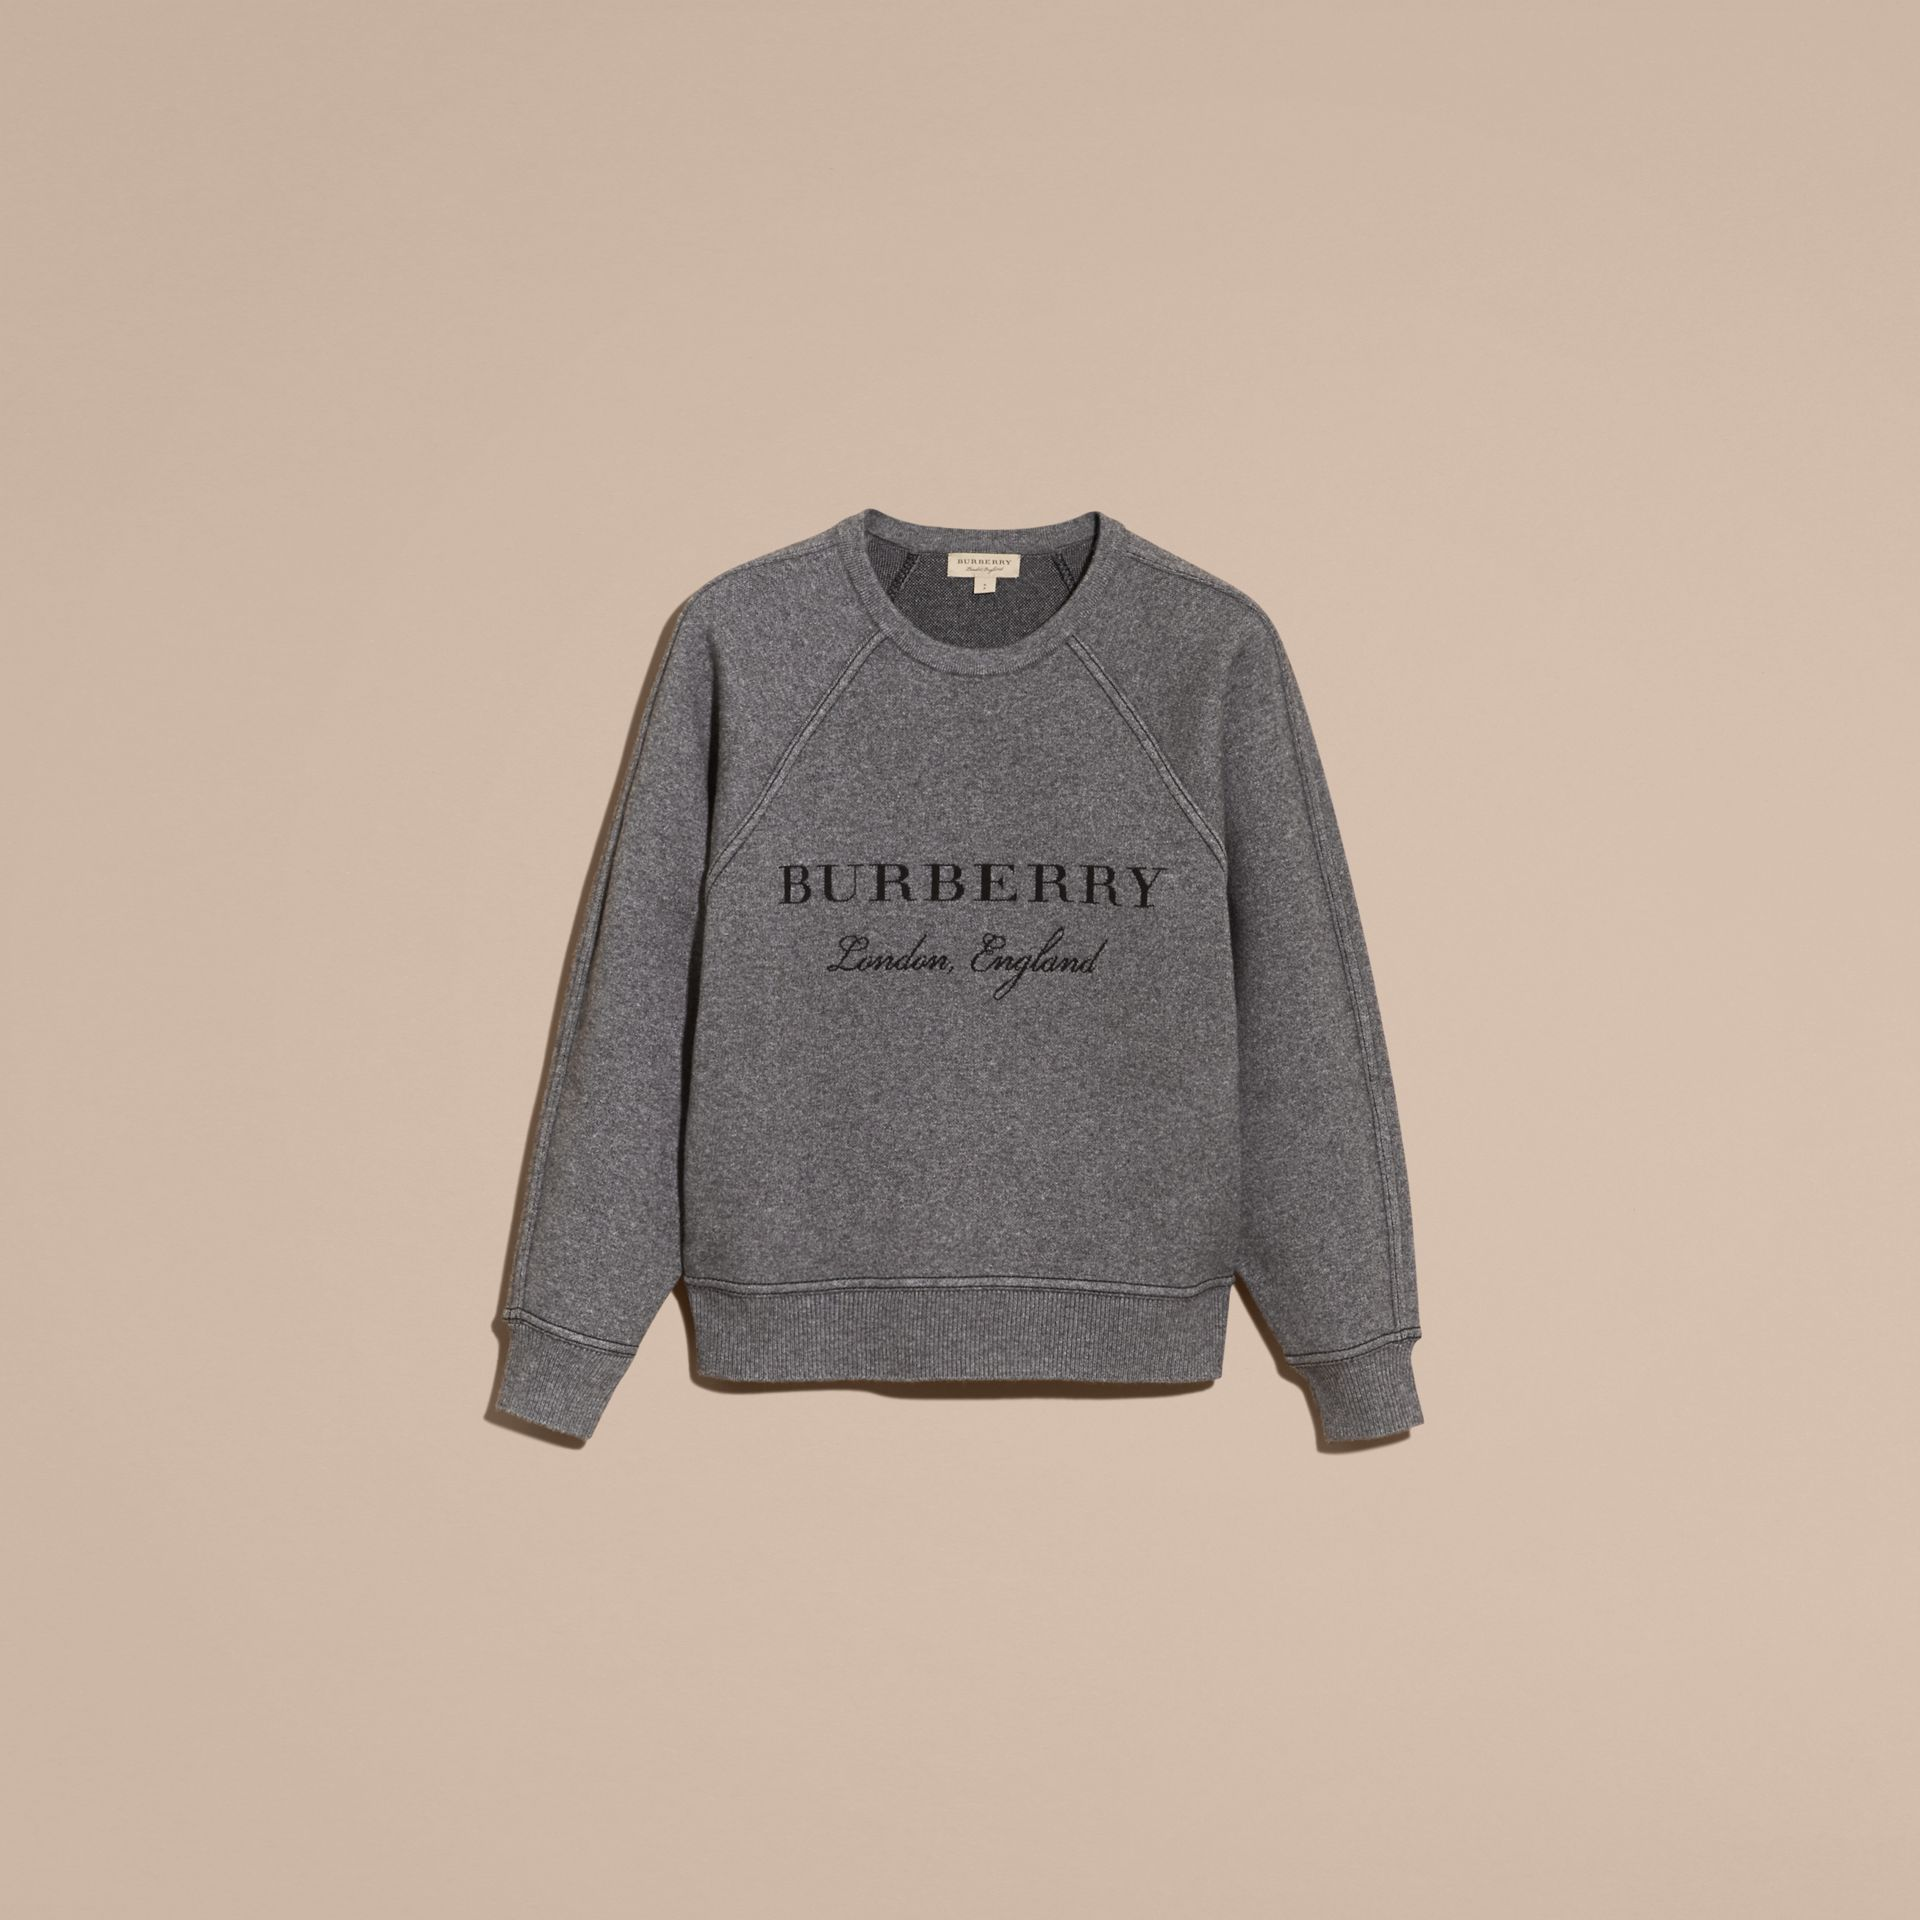 Topstitch Detail Wool Cashmere Blend Sweater in Mid Grey Melange - Women | Burberry - gallery image 4